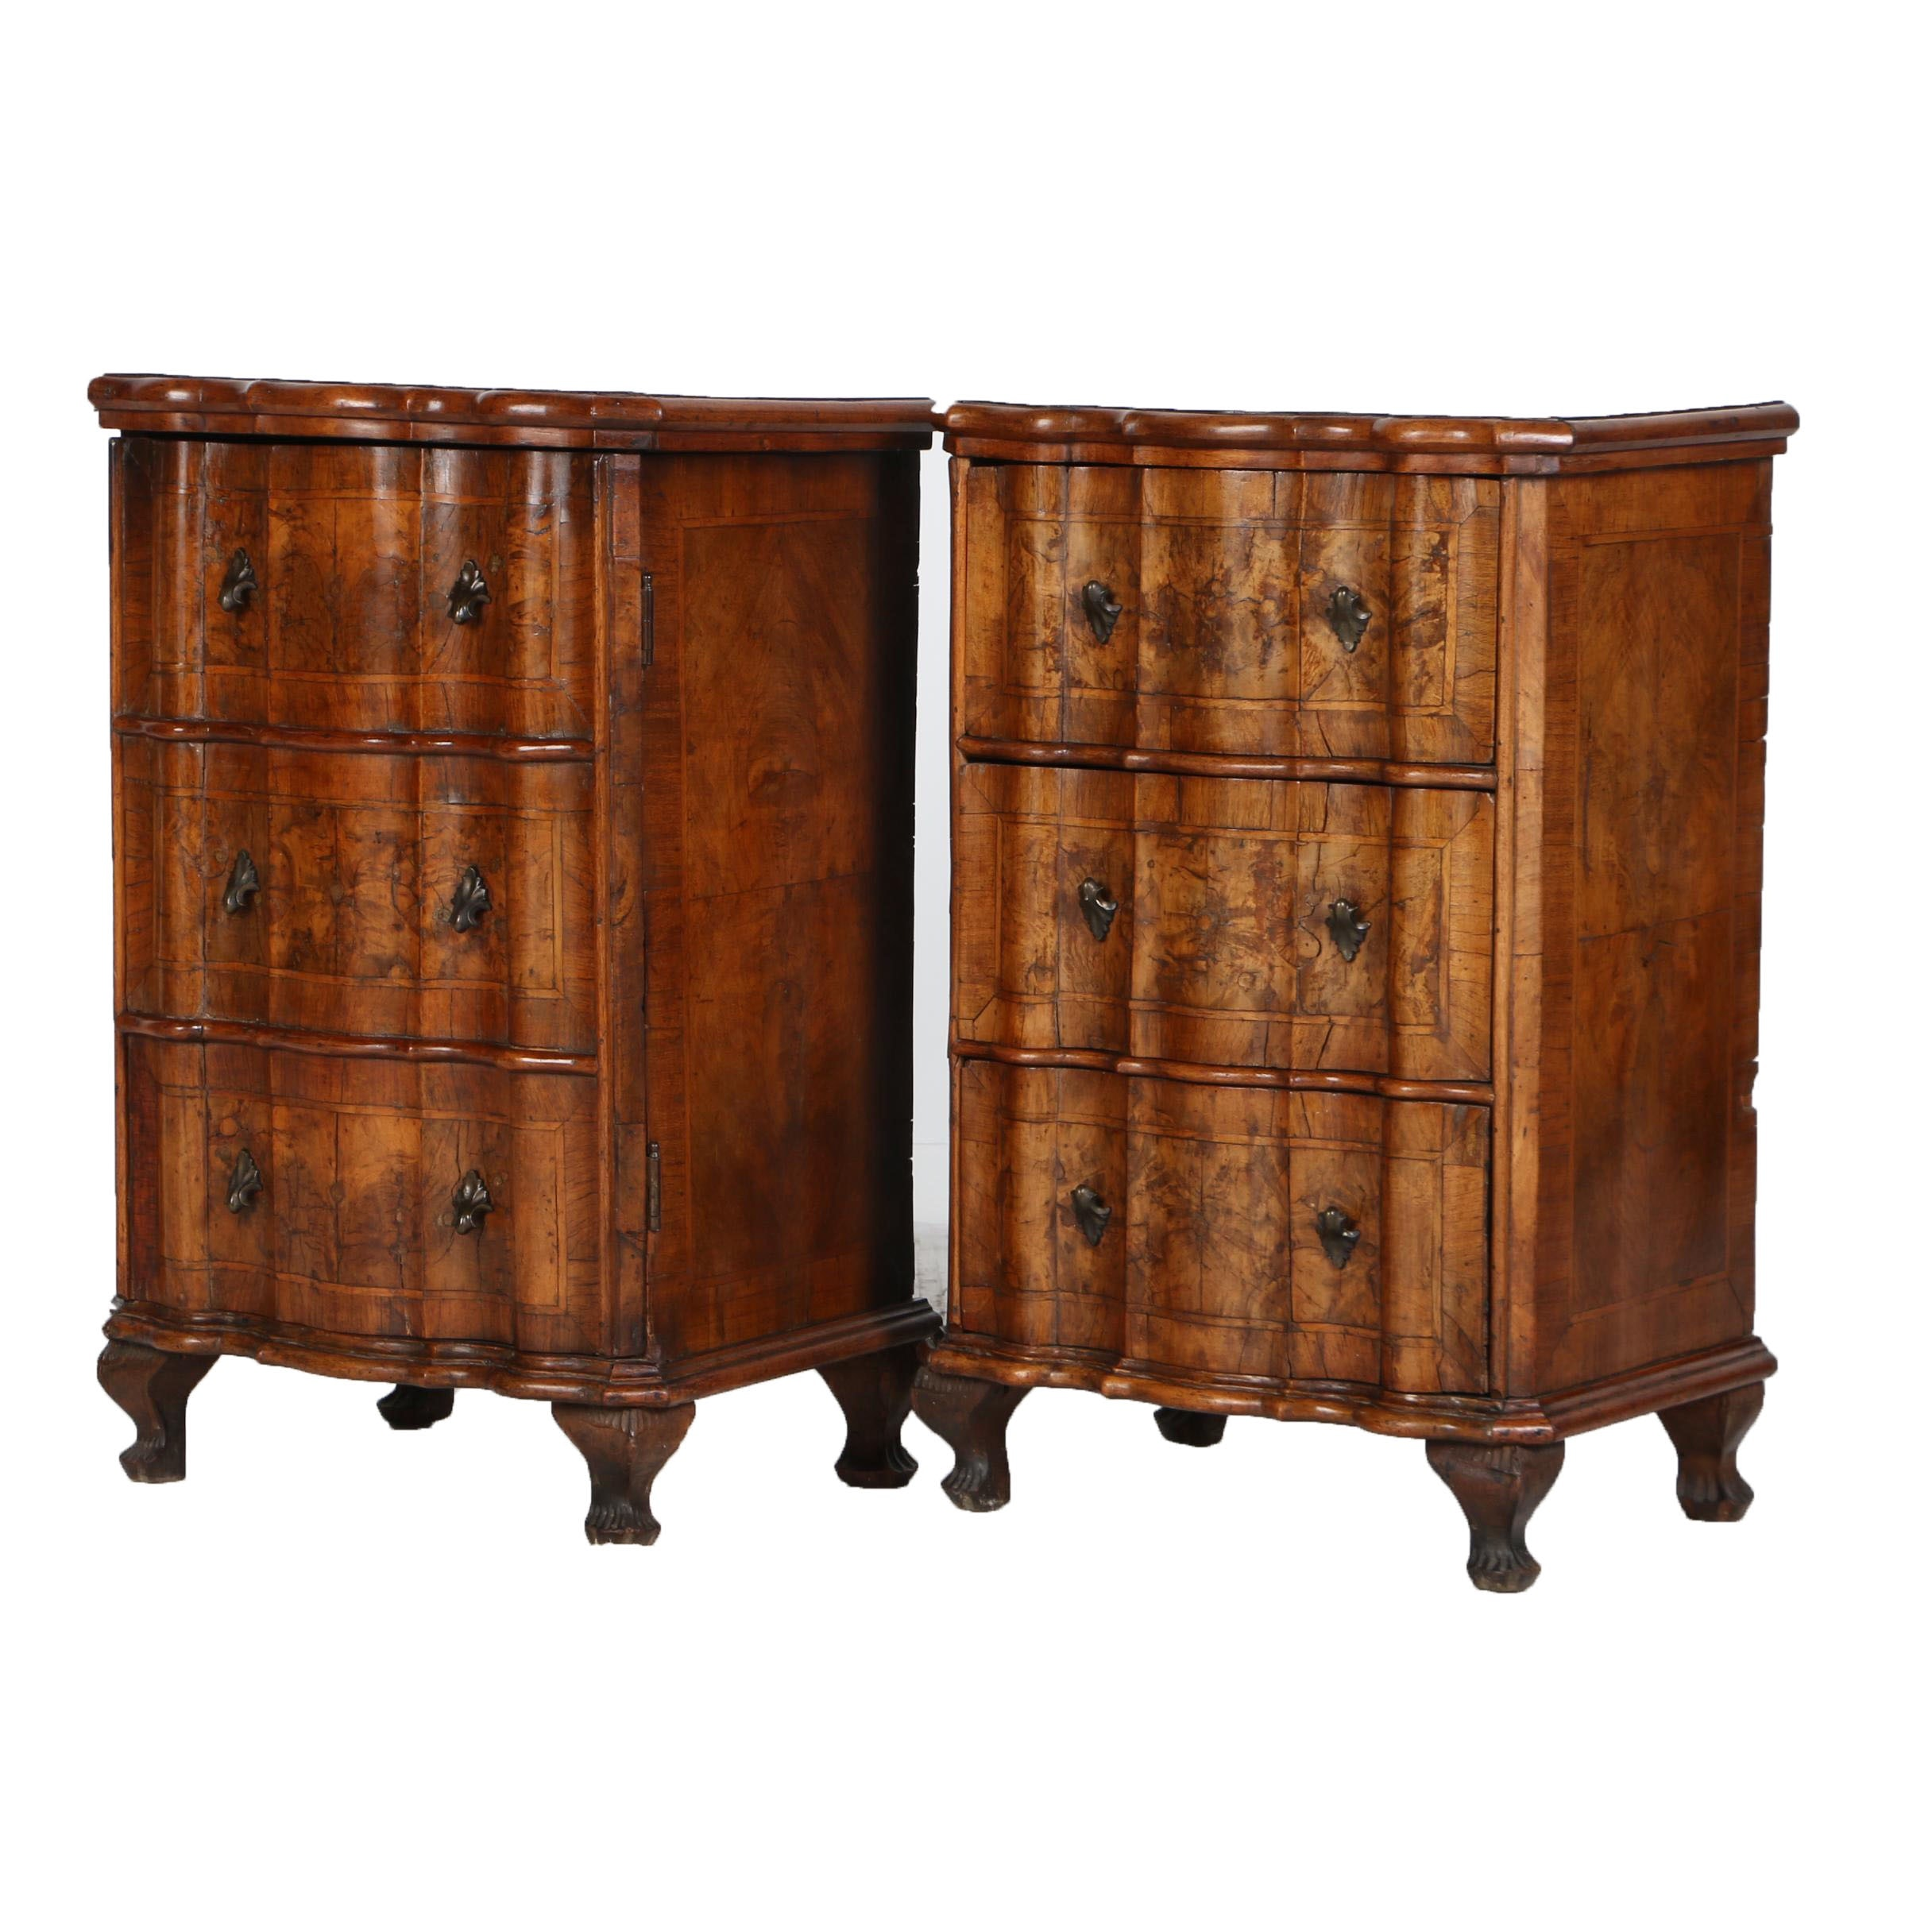 Pair of Italian Rococo Walnut Serpentine-Front Bedside Commodes, 18th Century